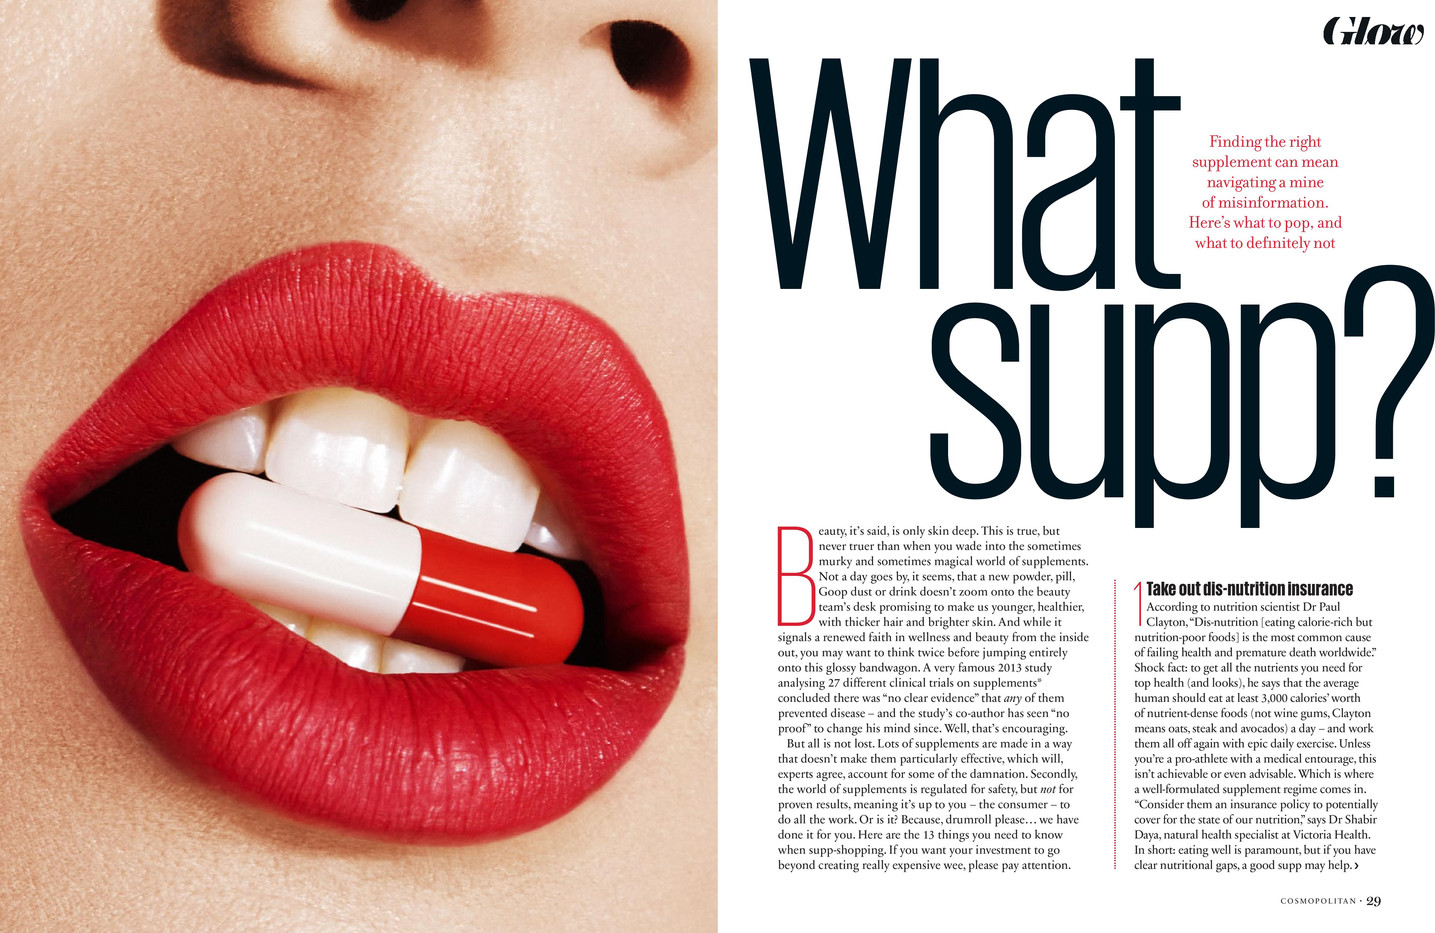 What Supp? – Cosmopolitan